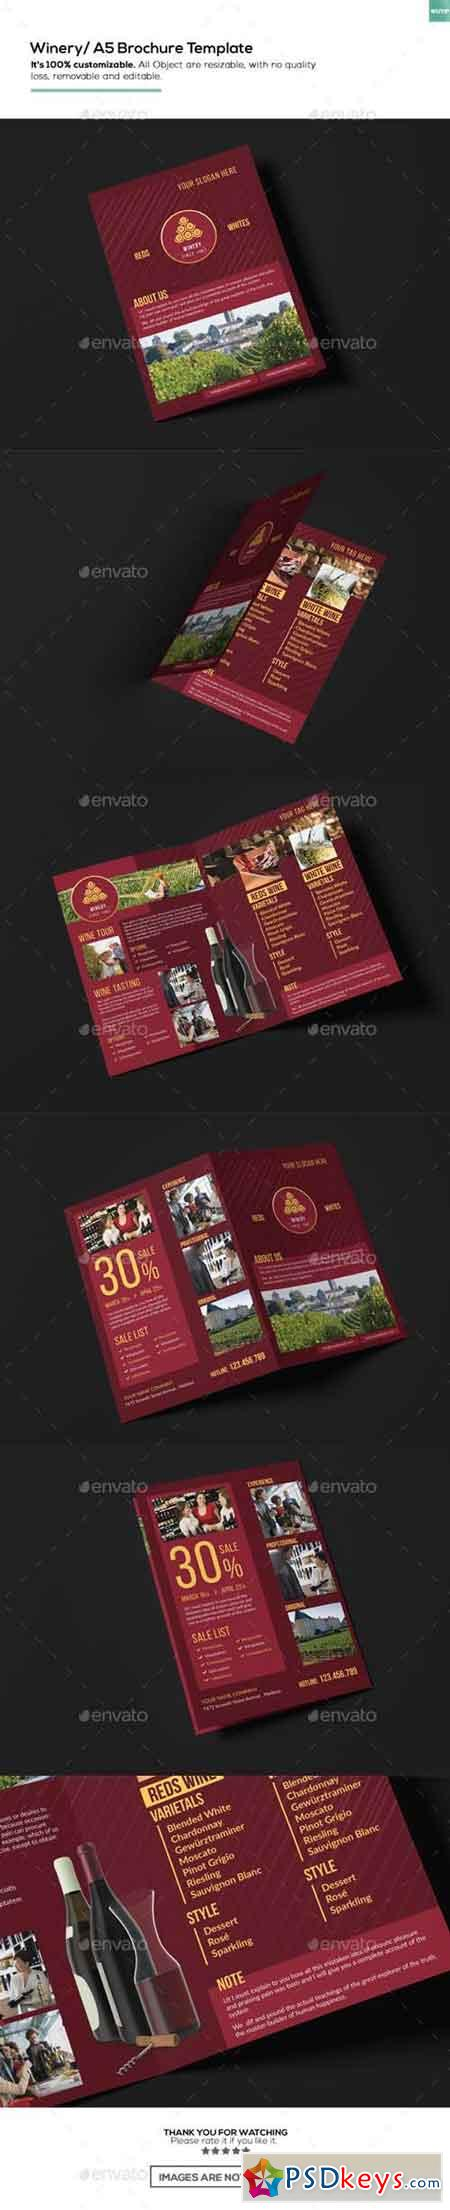 Winery A5 Brochure Template 15911030